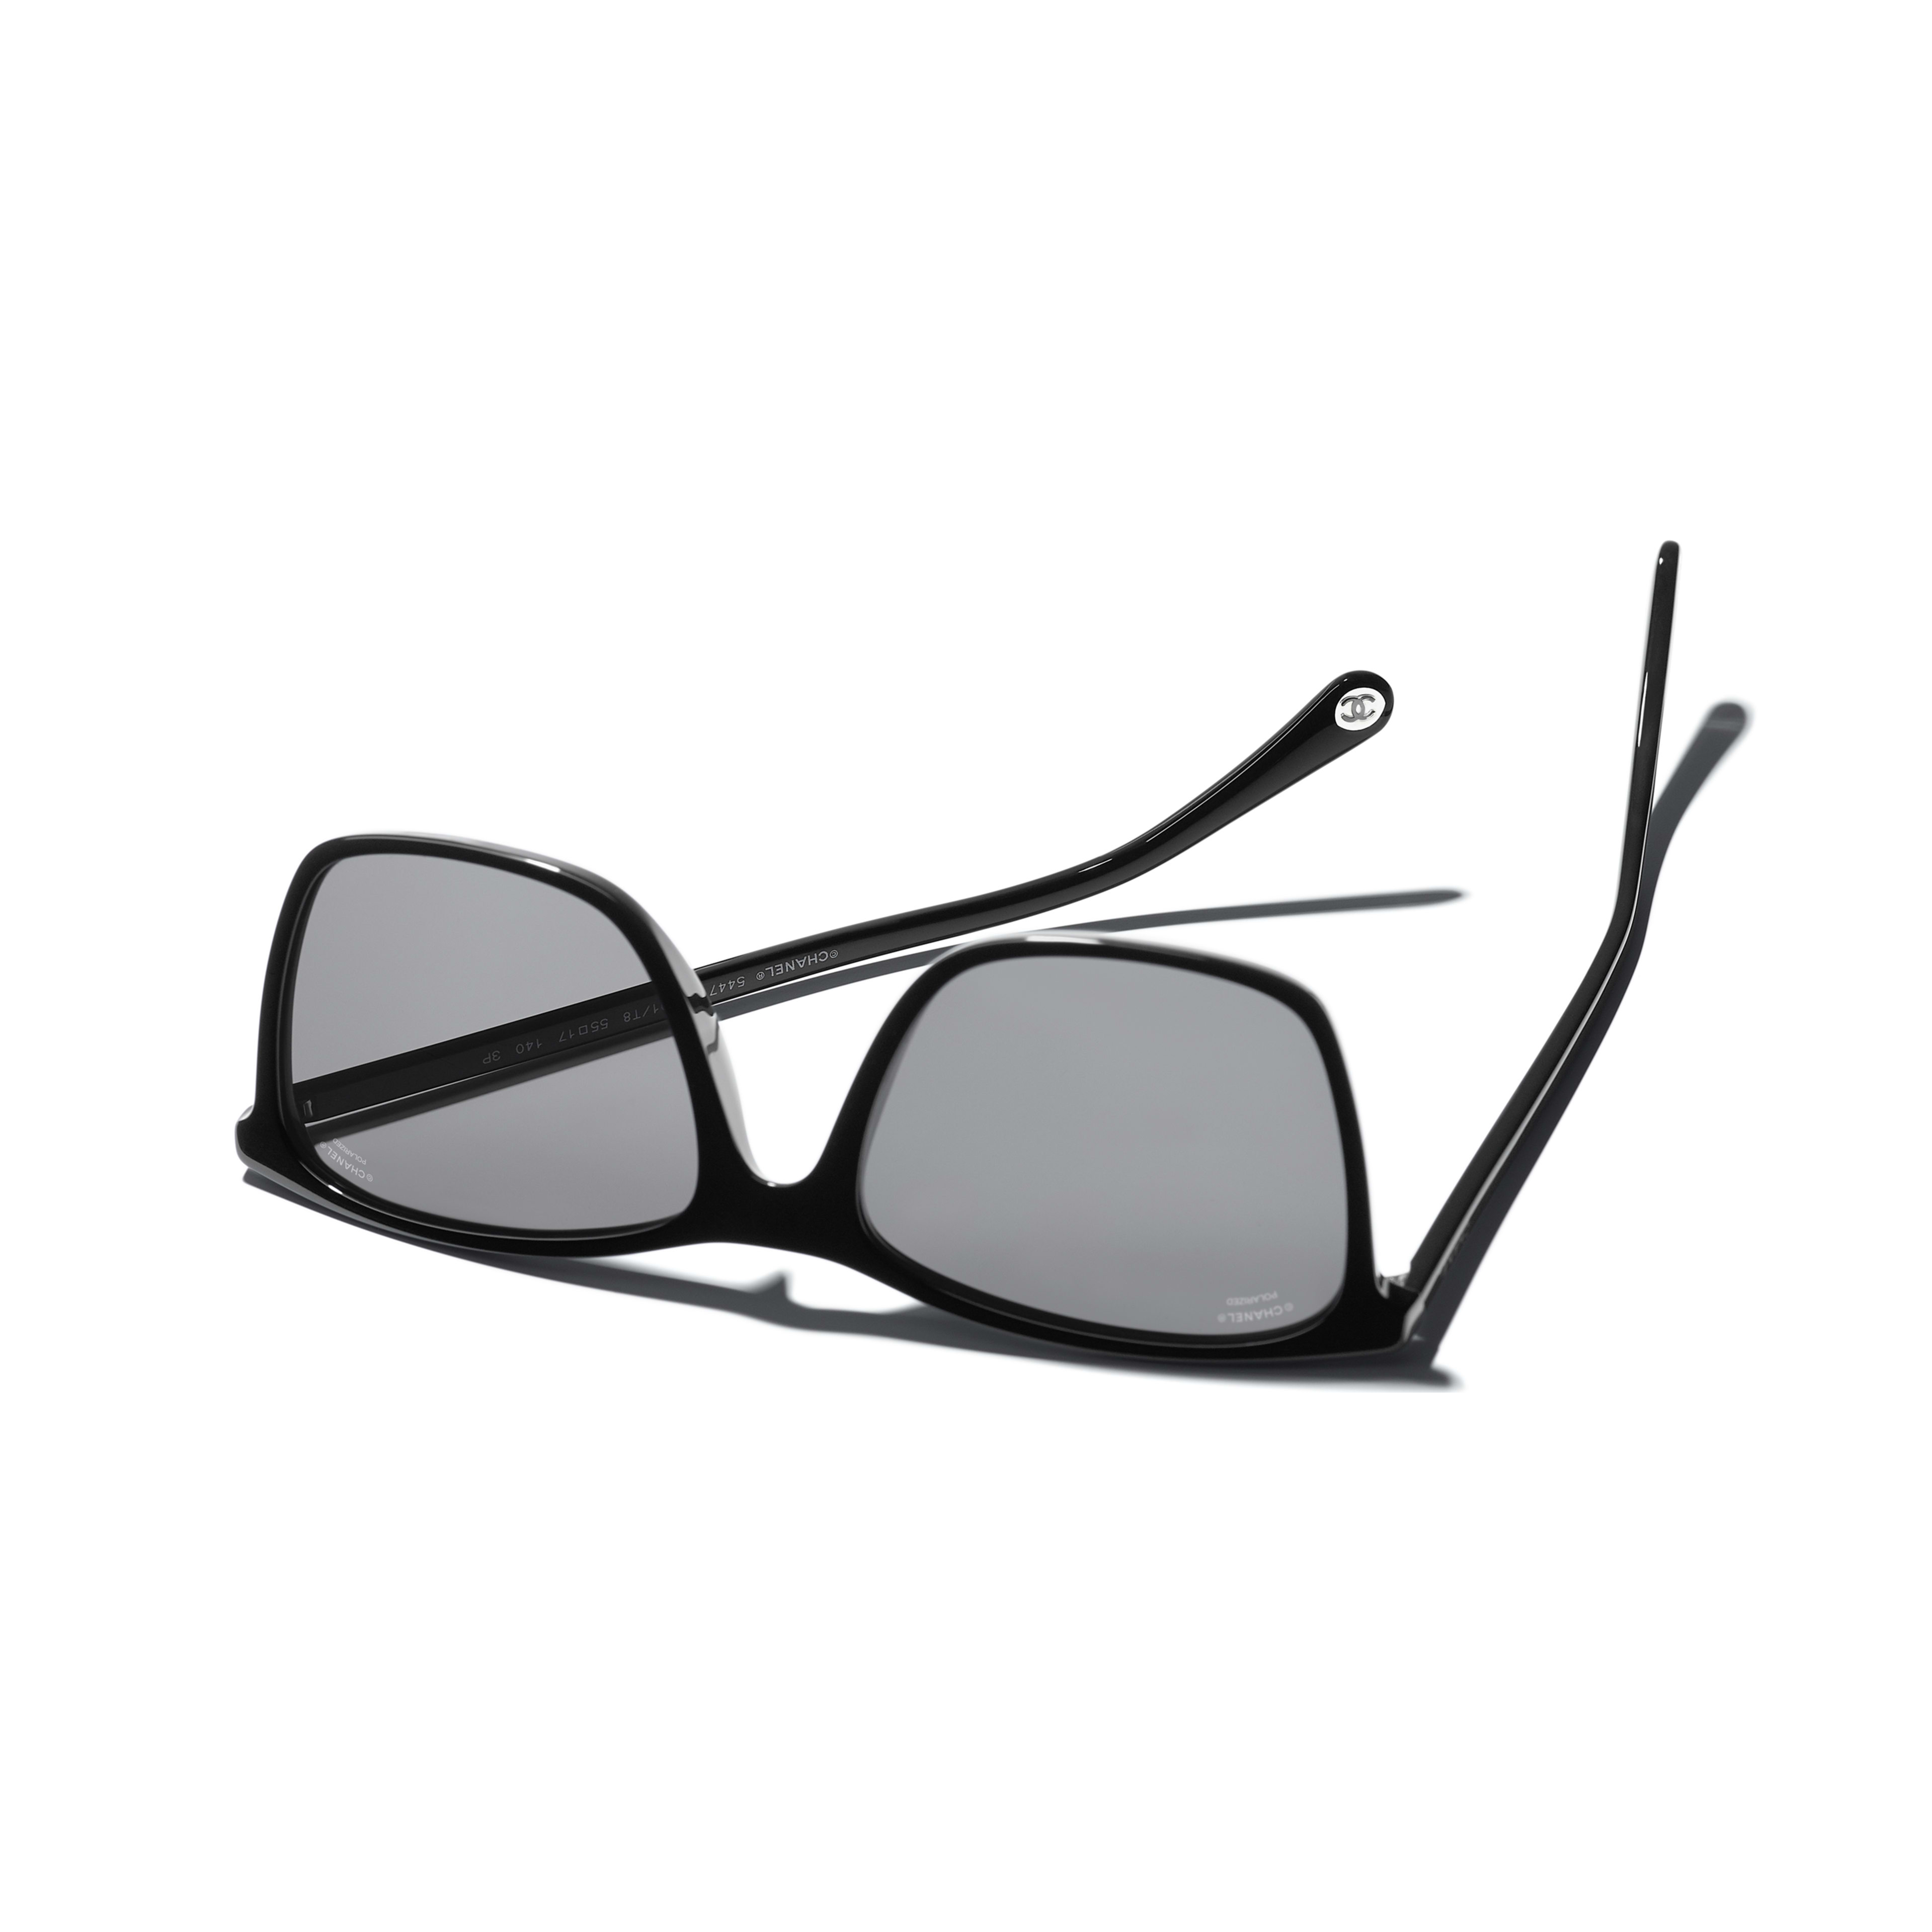 Square Sunglasses - Black - Acetate - CHANEL - Extra view - see standard sized version